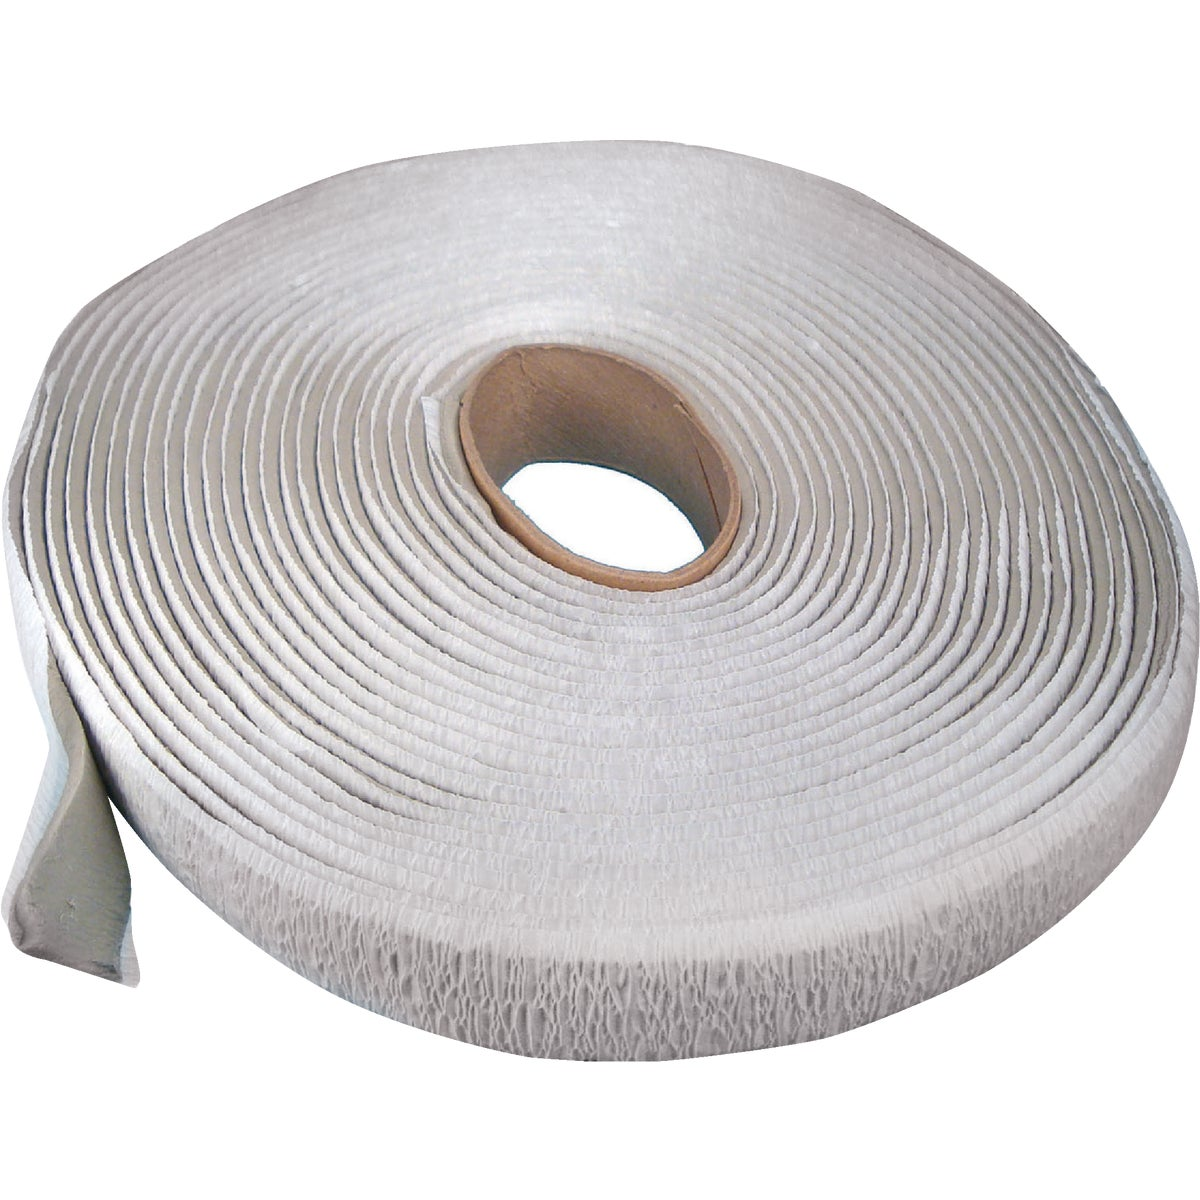 GRAY PUTTY TAPE - R-011B by U S Hardware